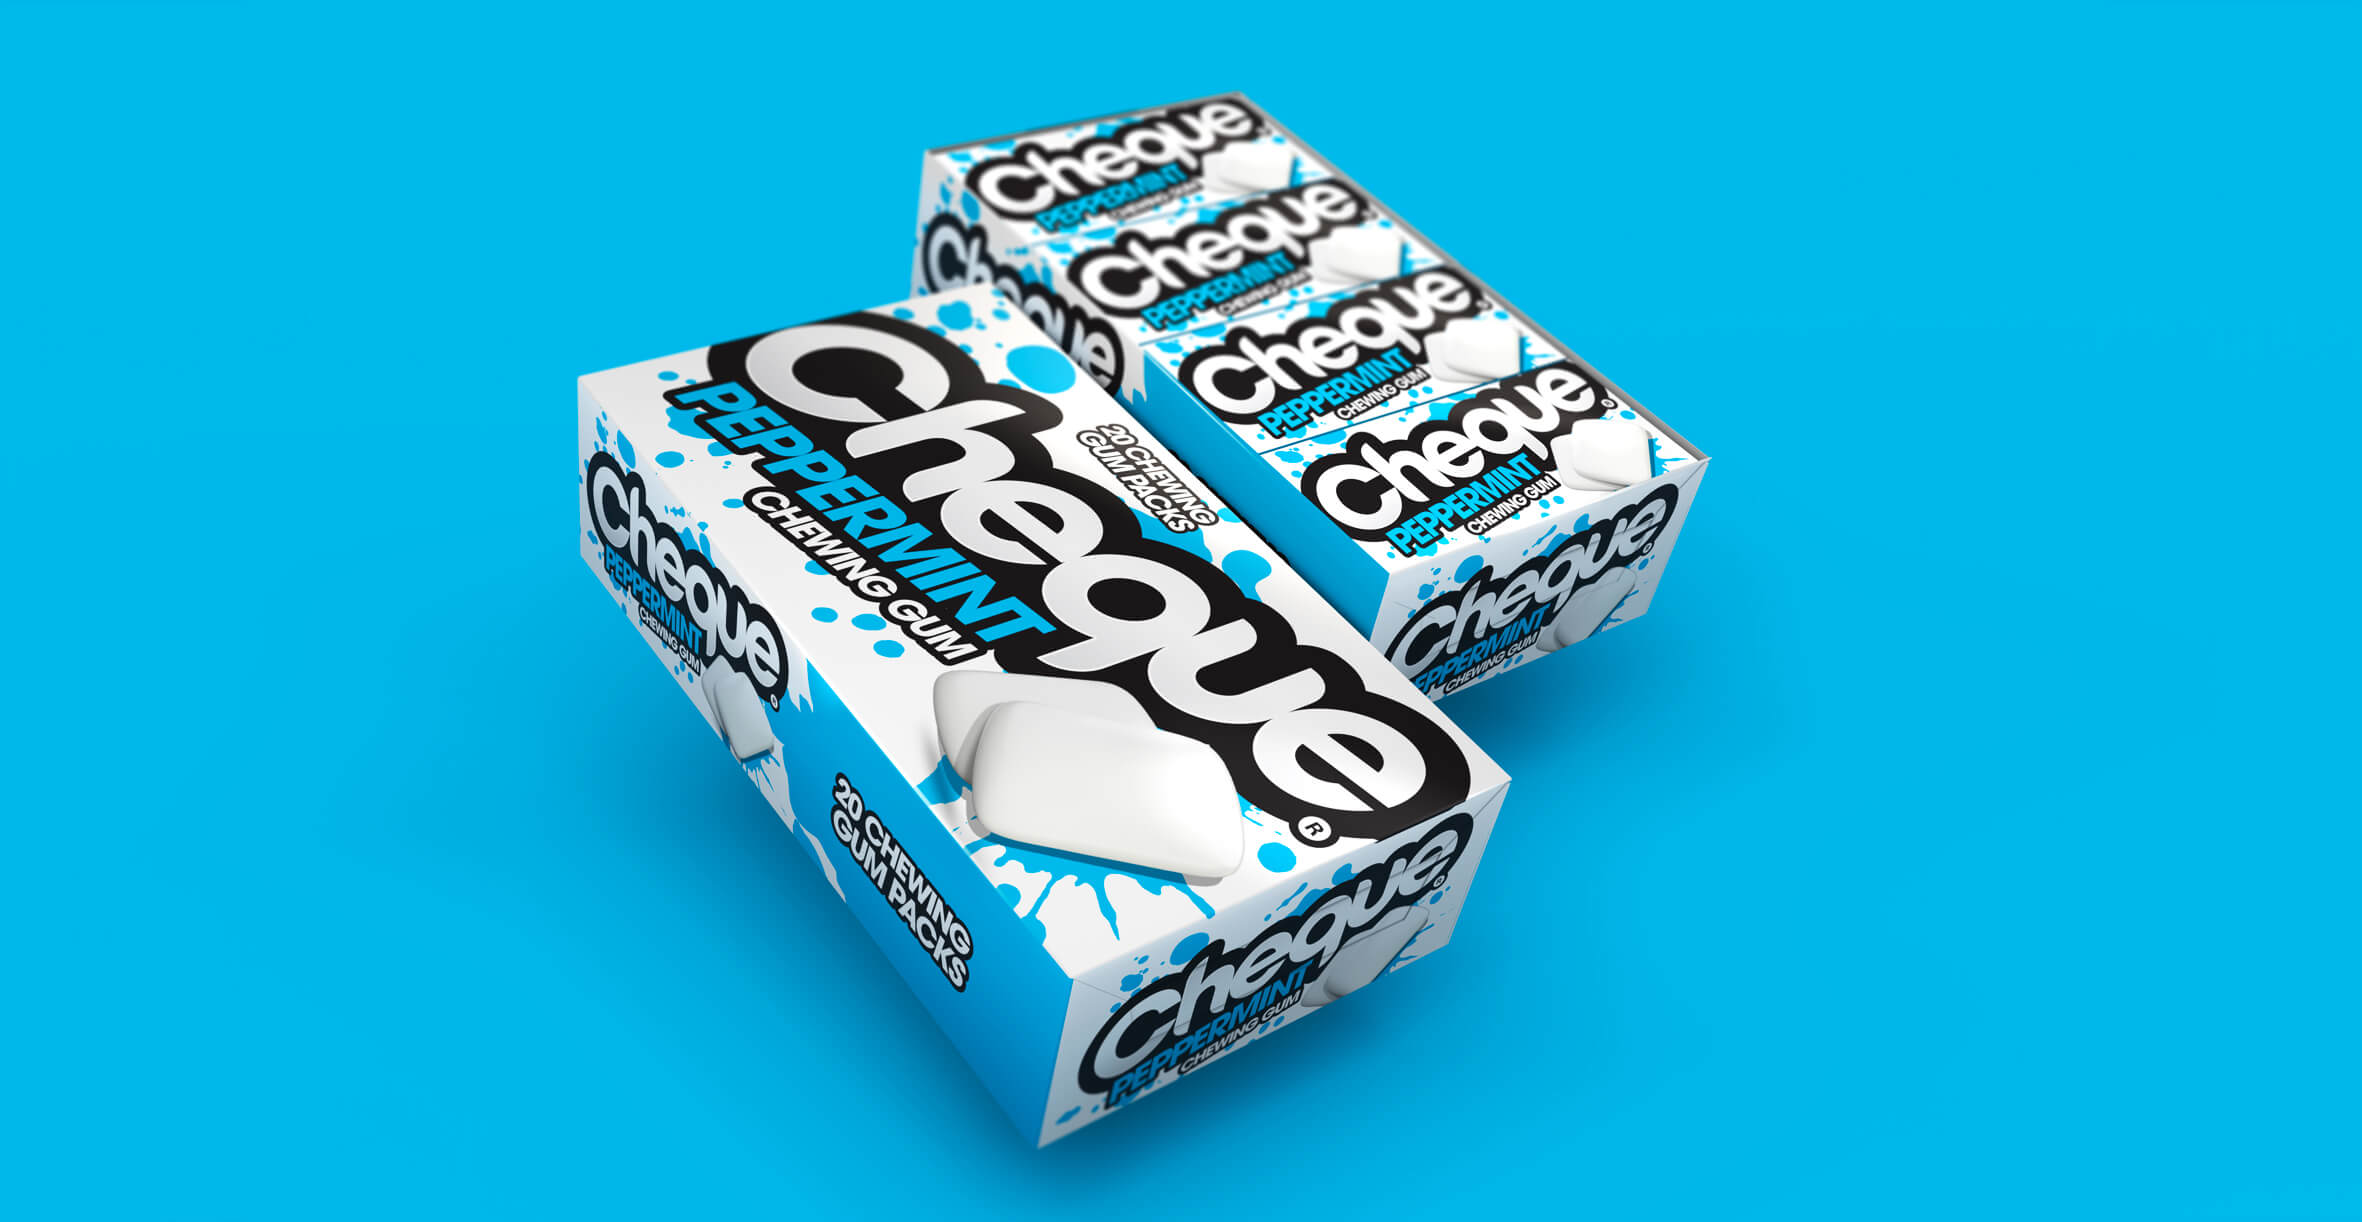 Branding and Packaging Design for Confectionary Brand Cheque Gum - Peppermint Shelf Ready Packaging